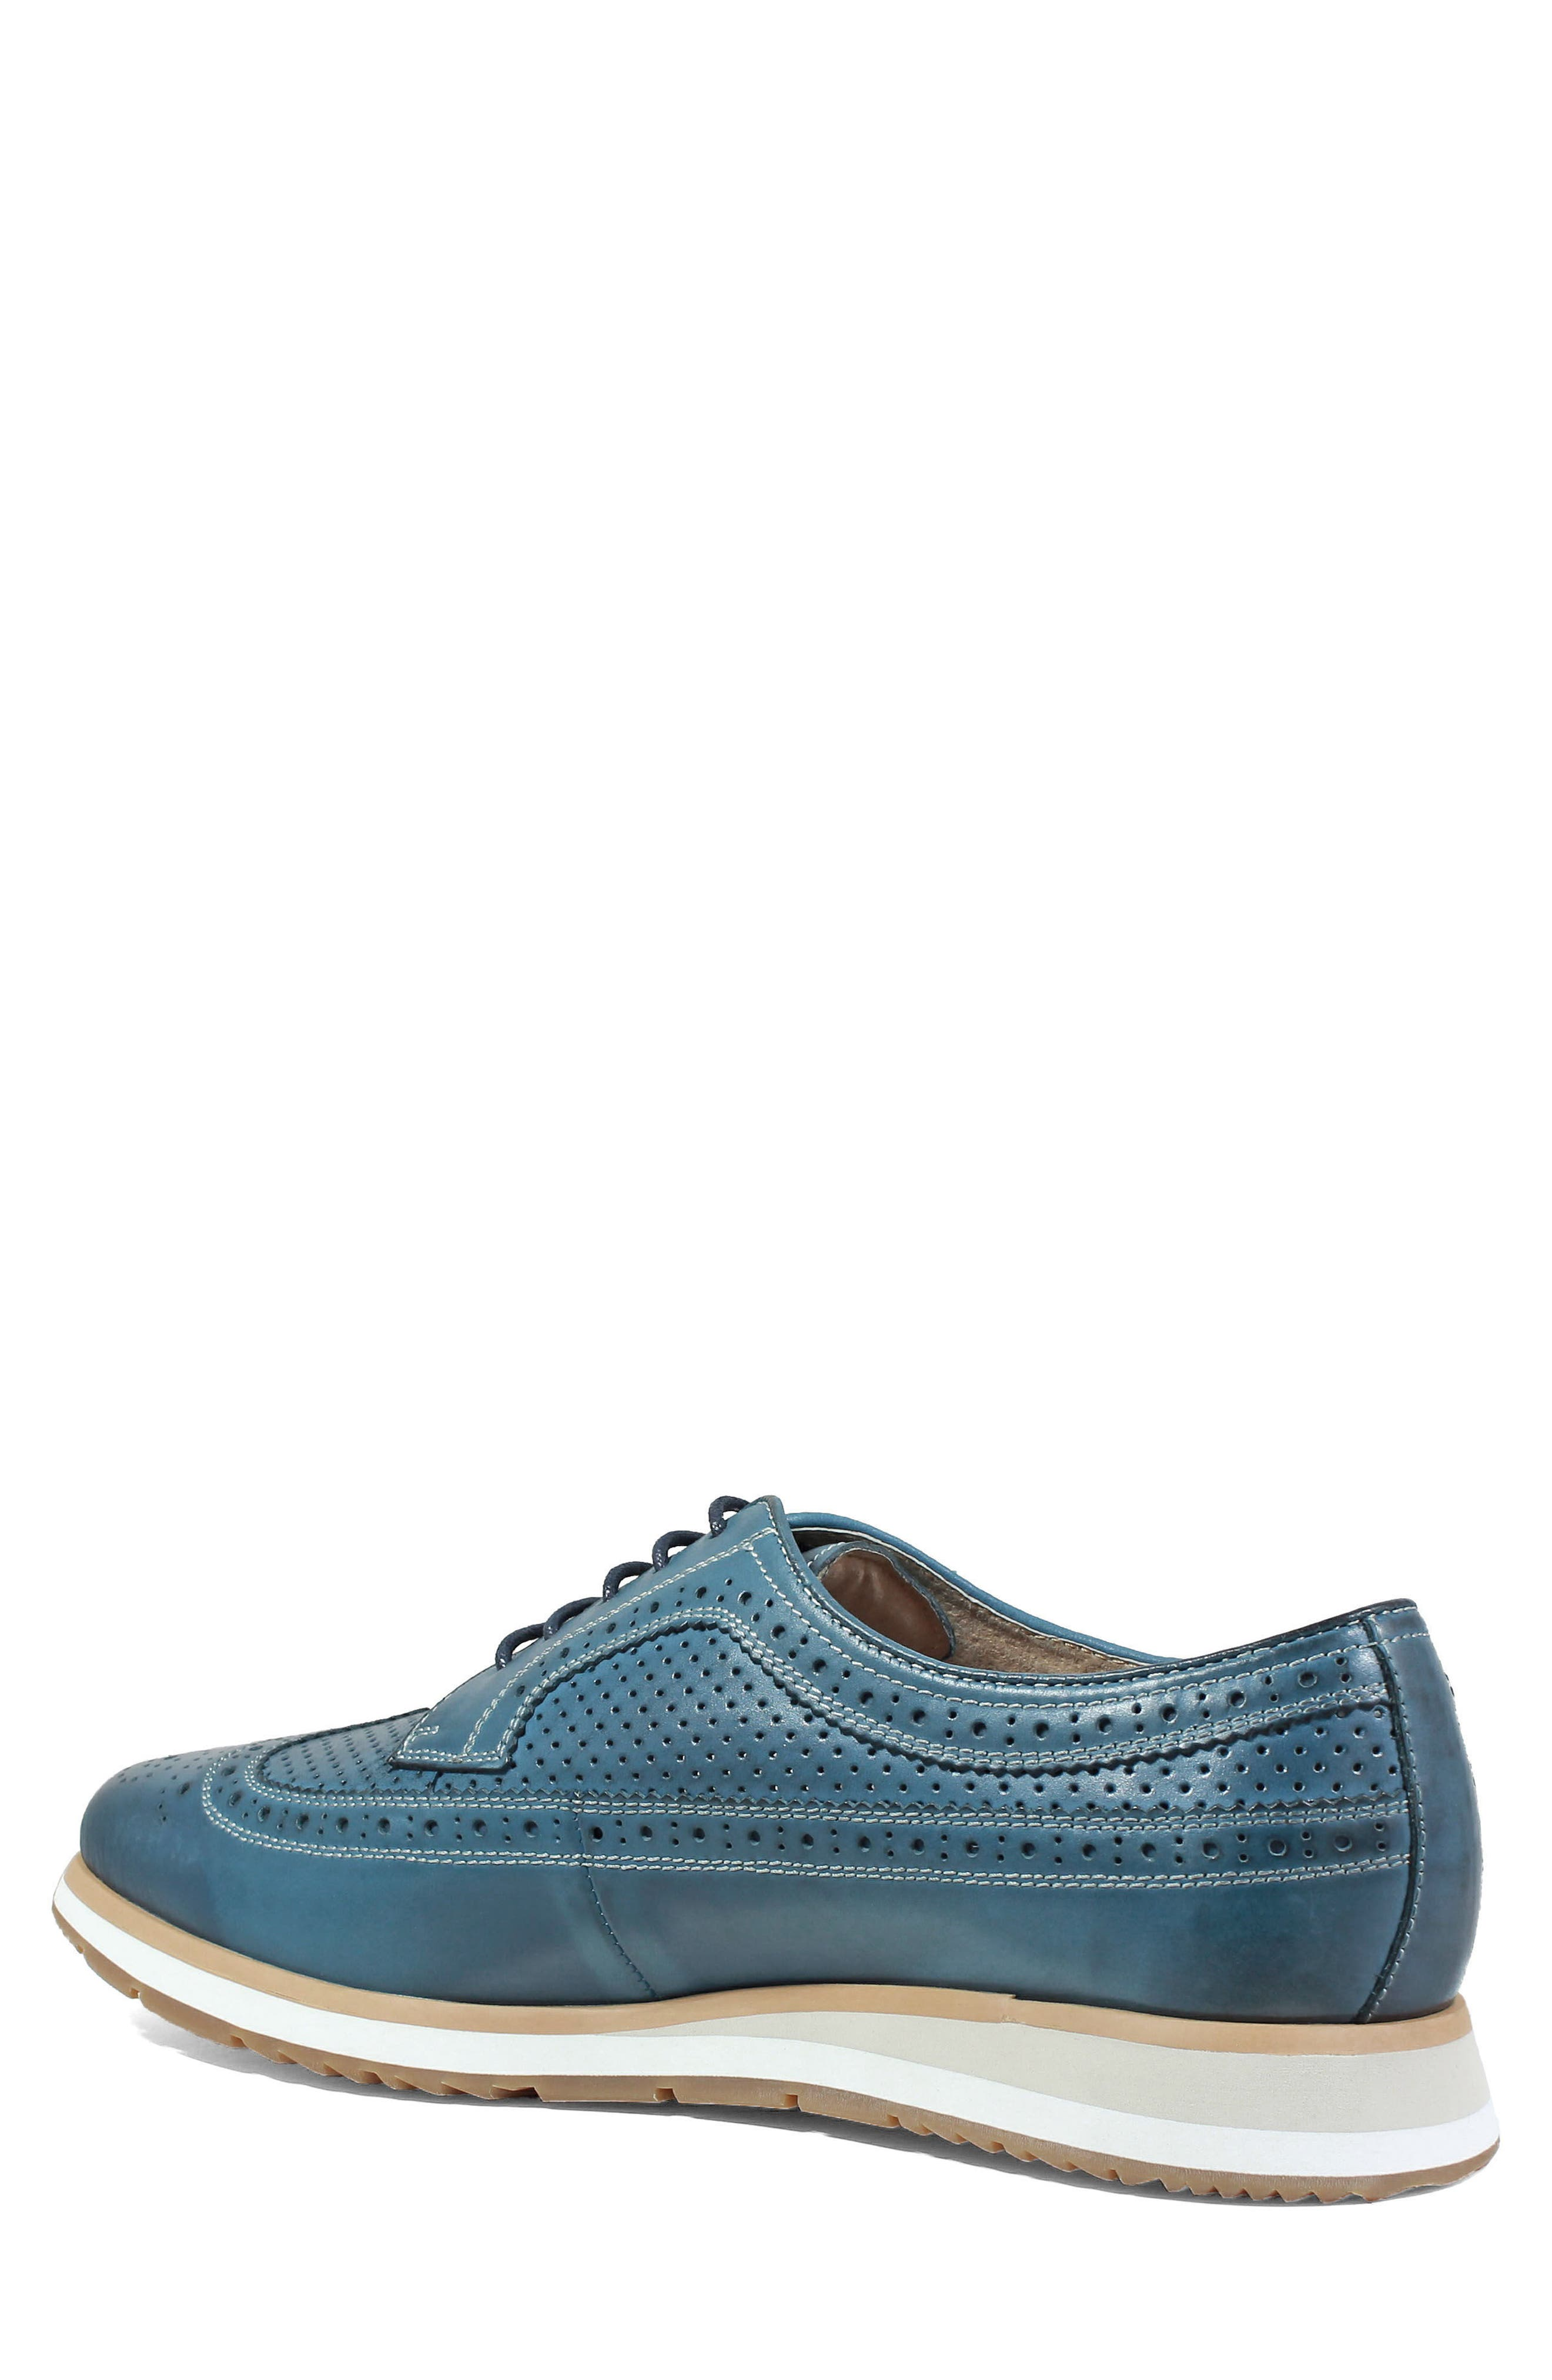 Limited Flux Perforated Wingtip Derby,                             Alternate thumbnail 6, color,